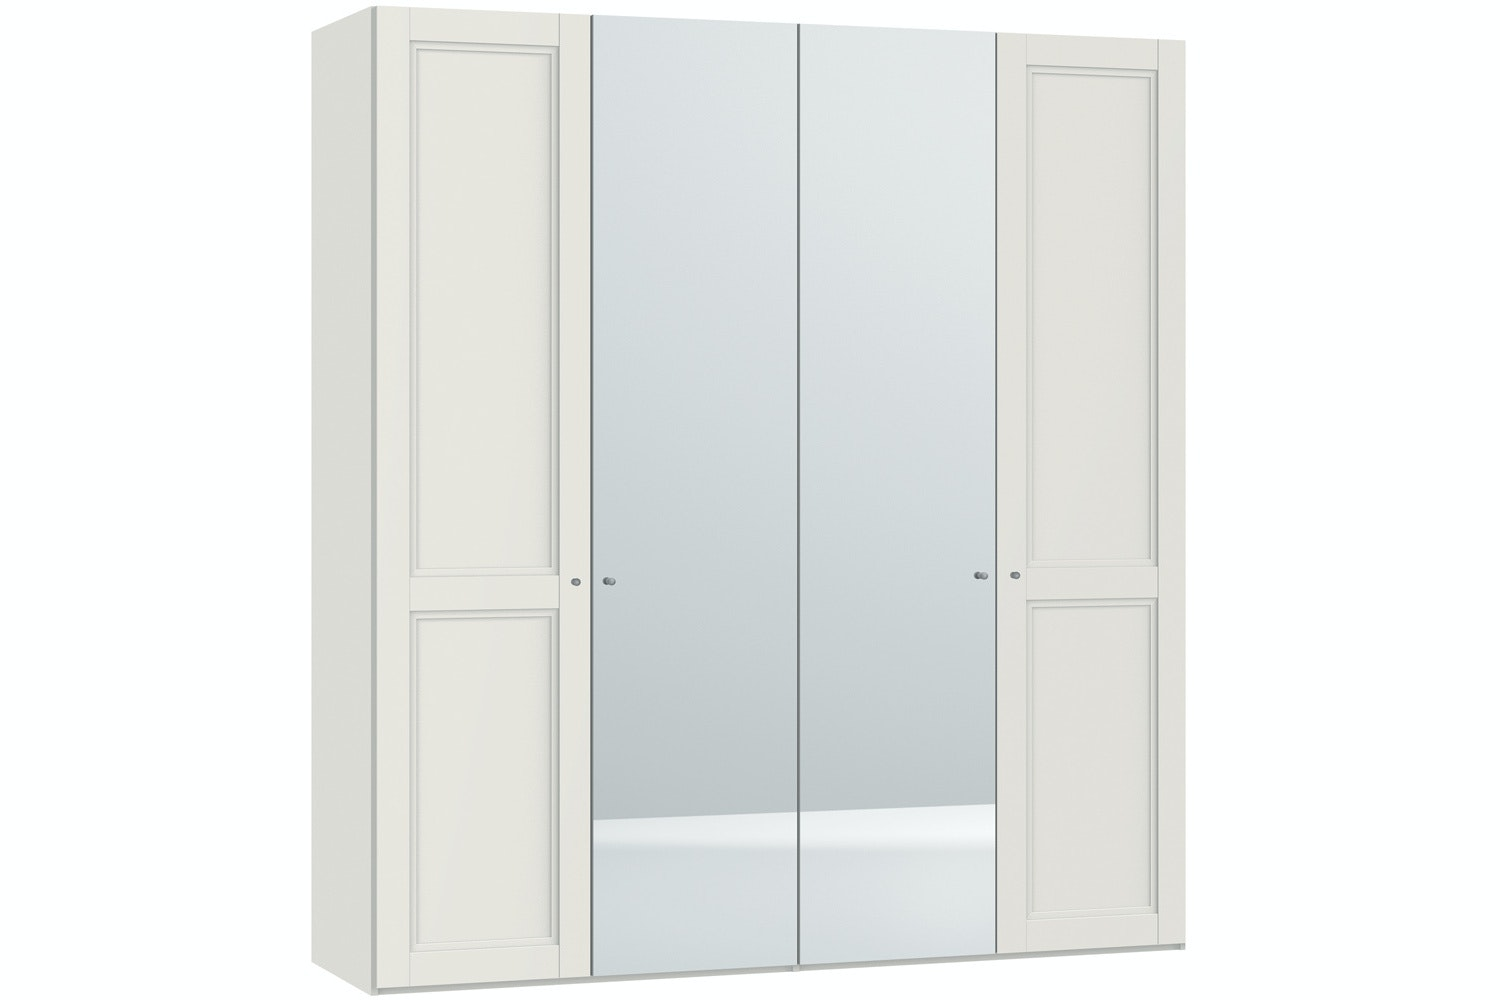 Emily Hinged 4 Door Wardrobe 203Cm | Country + Mirror